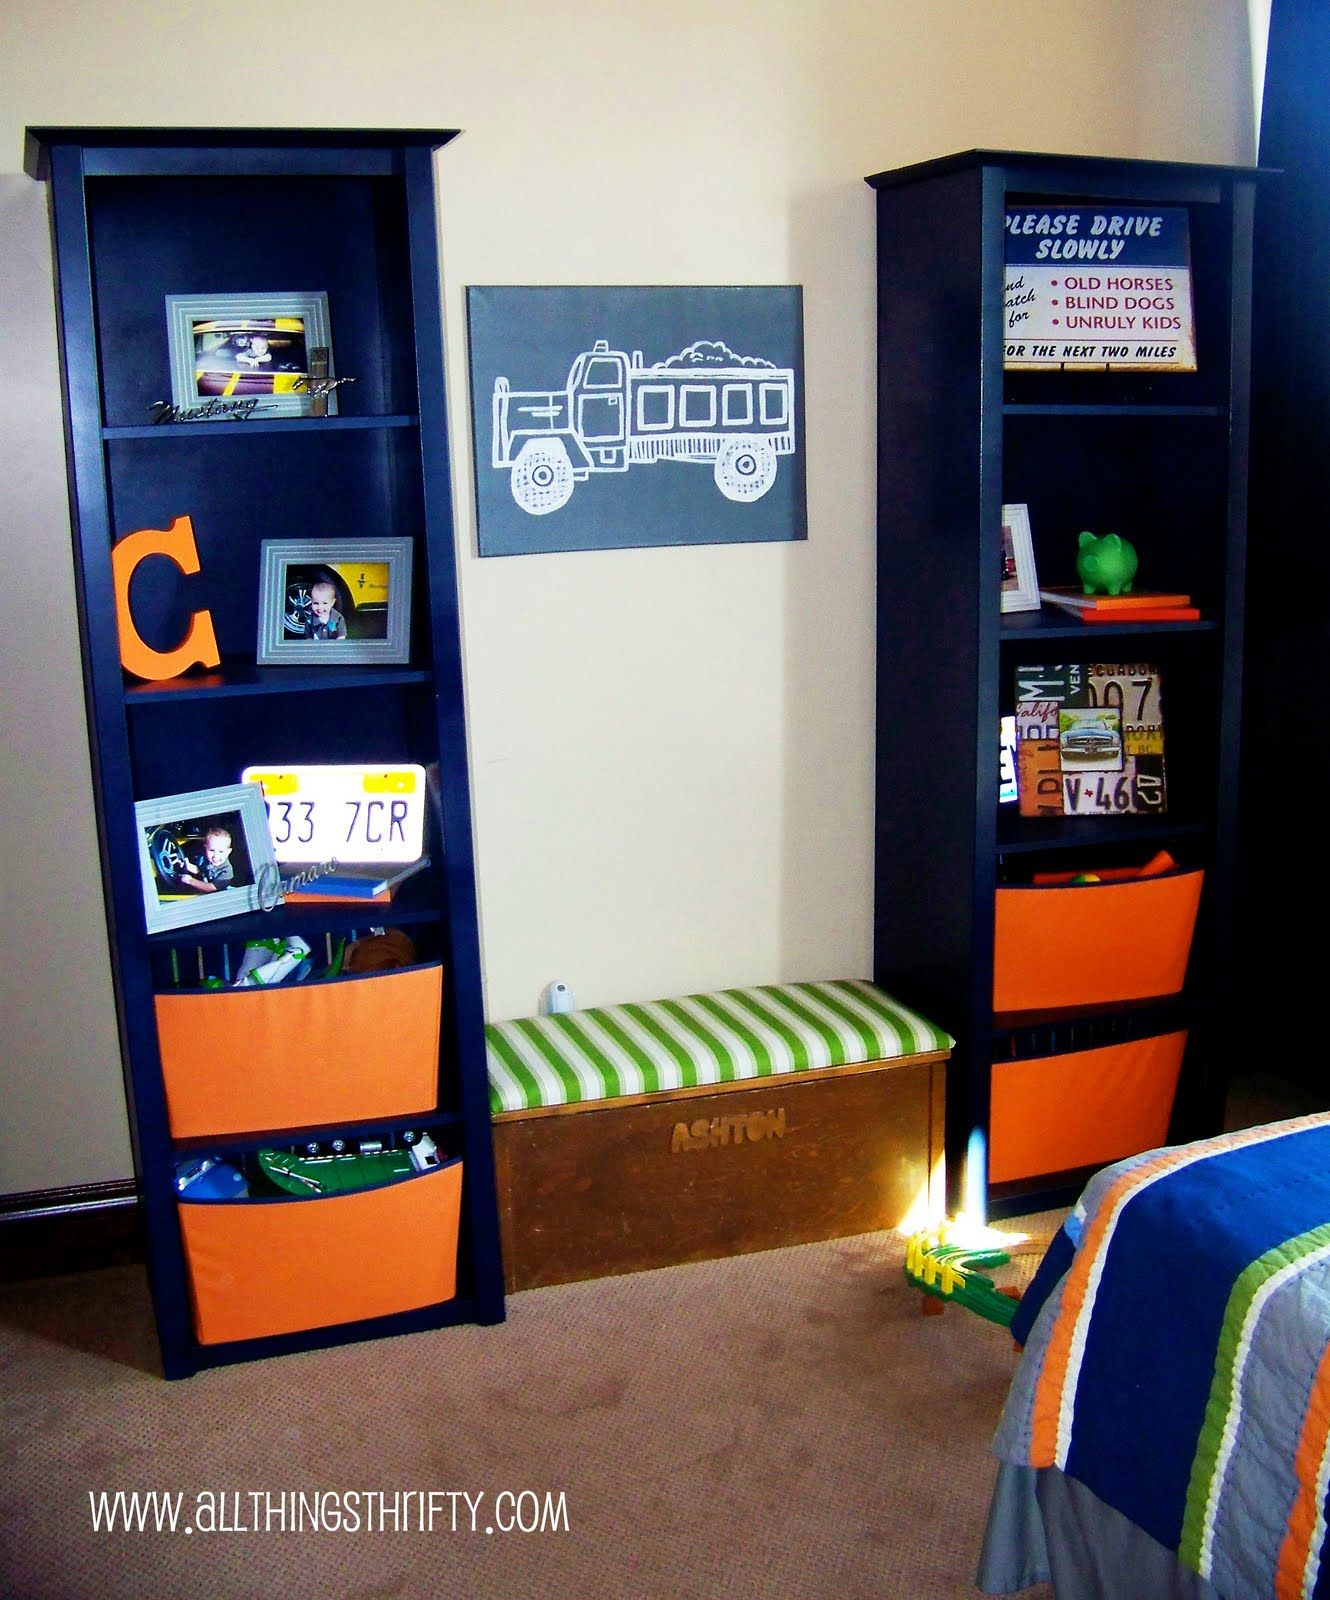 Teenage boys bedroom ideas - Lego Teenage Boy Bedroom Decorating Ideas Little Boy S Room Bedroom Decor